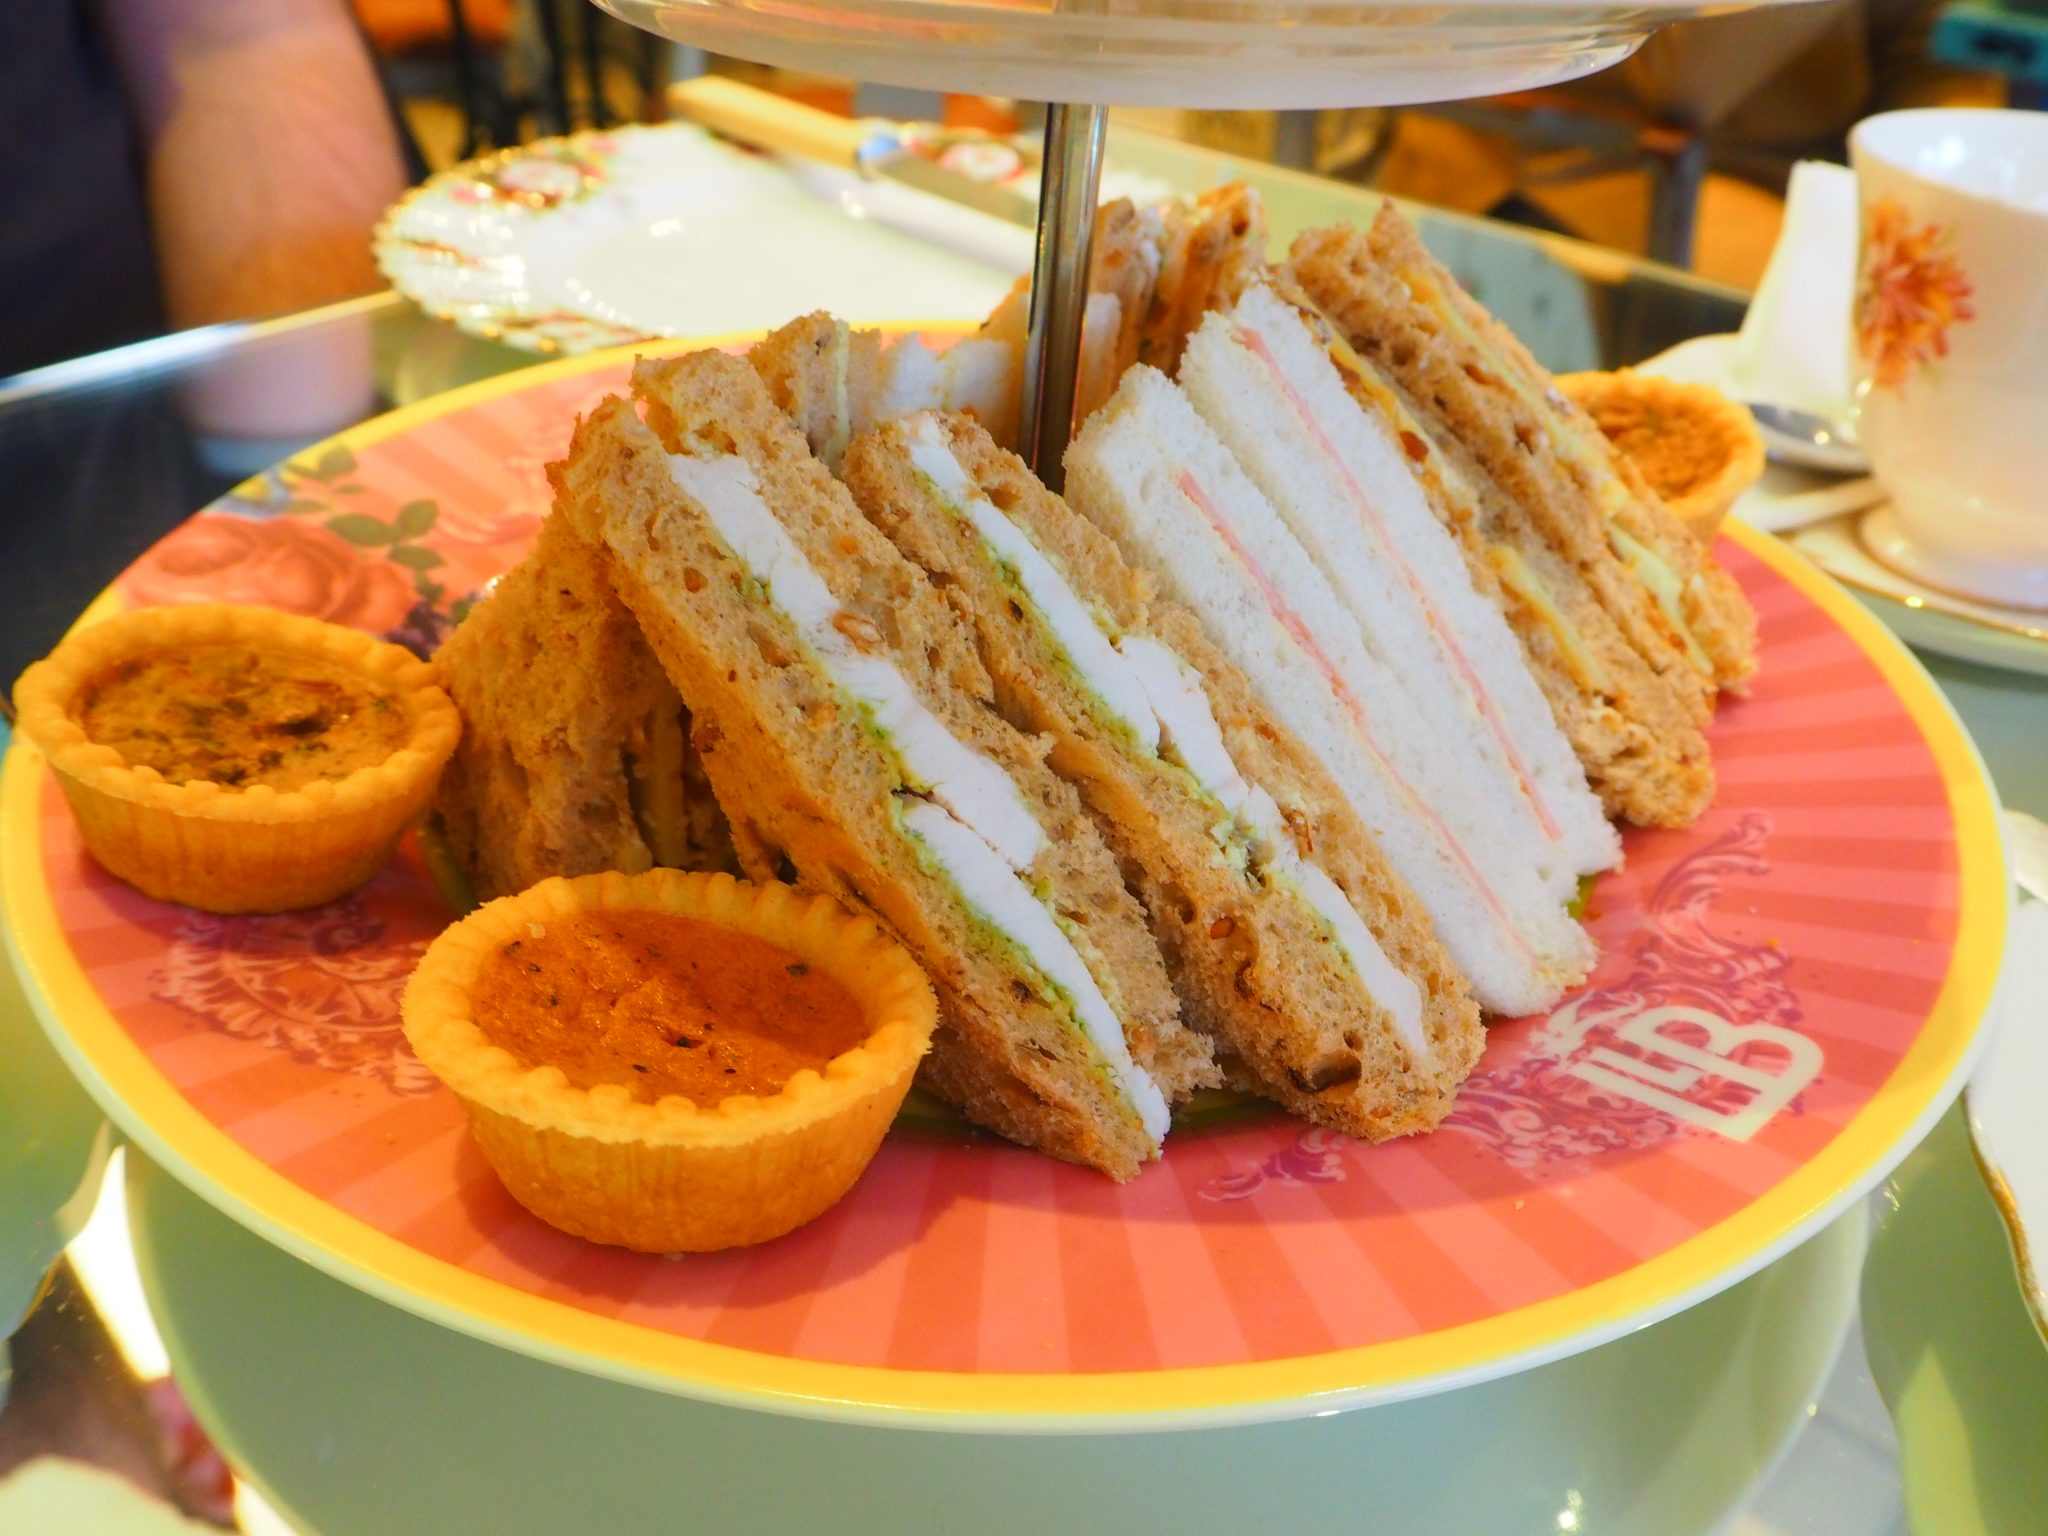 The Traditional afternoon tea savouries